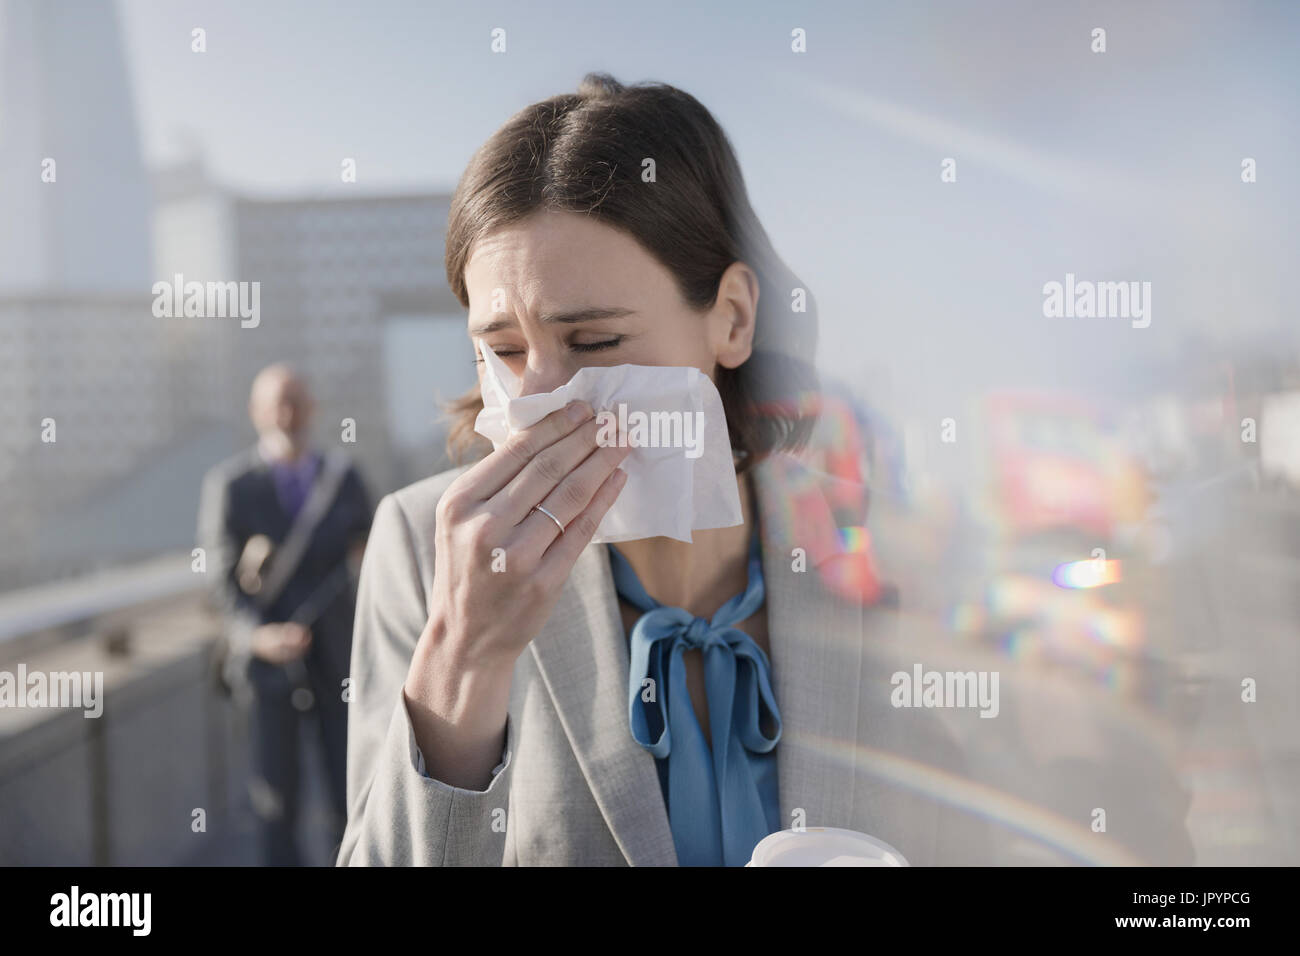 Businesswoman with allergies blowing nose into tissue on sunny urban sidewalk - Stock Image